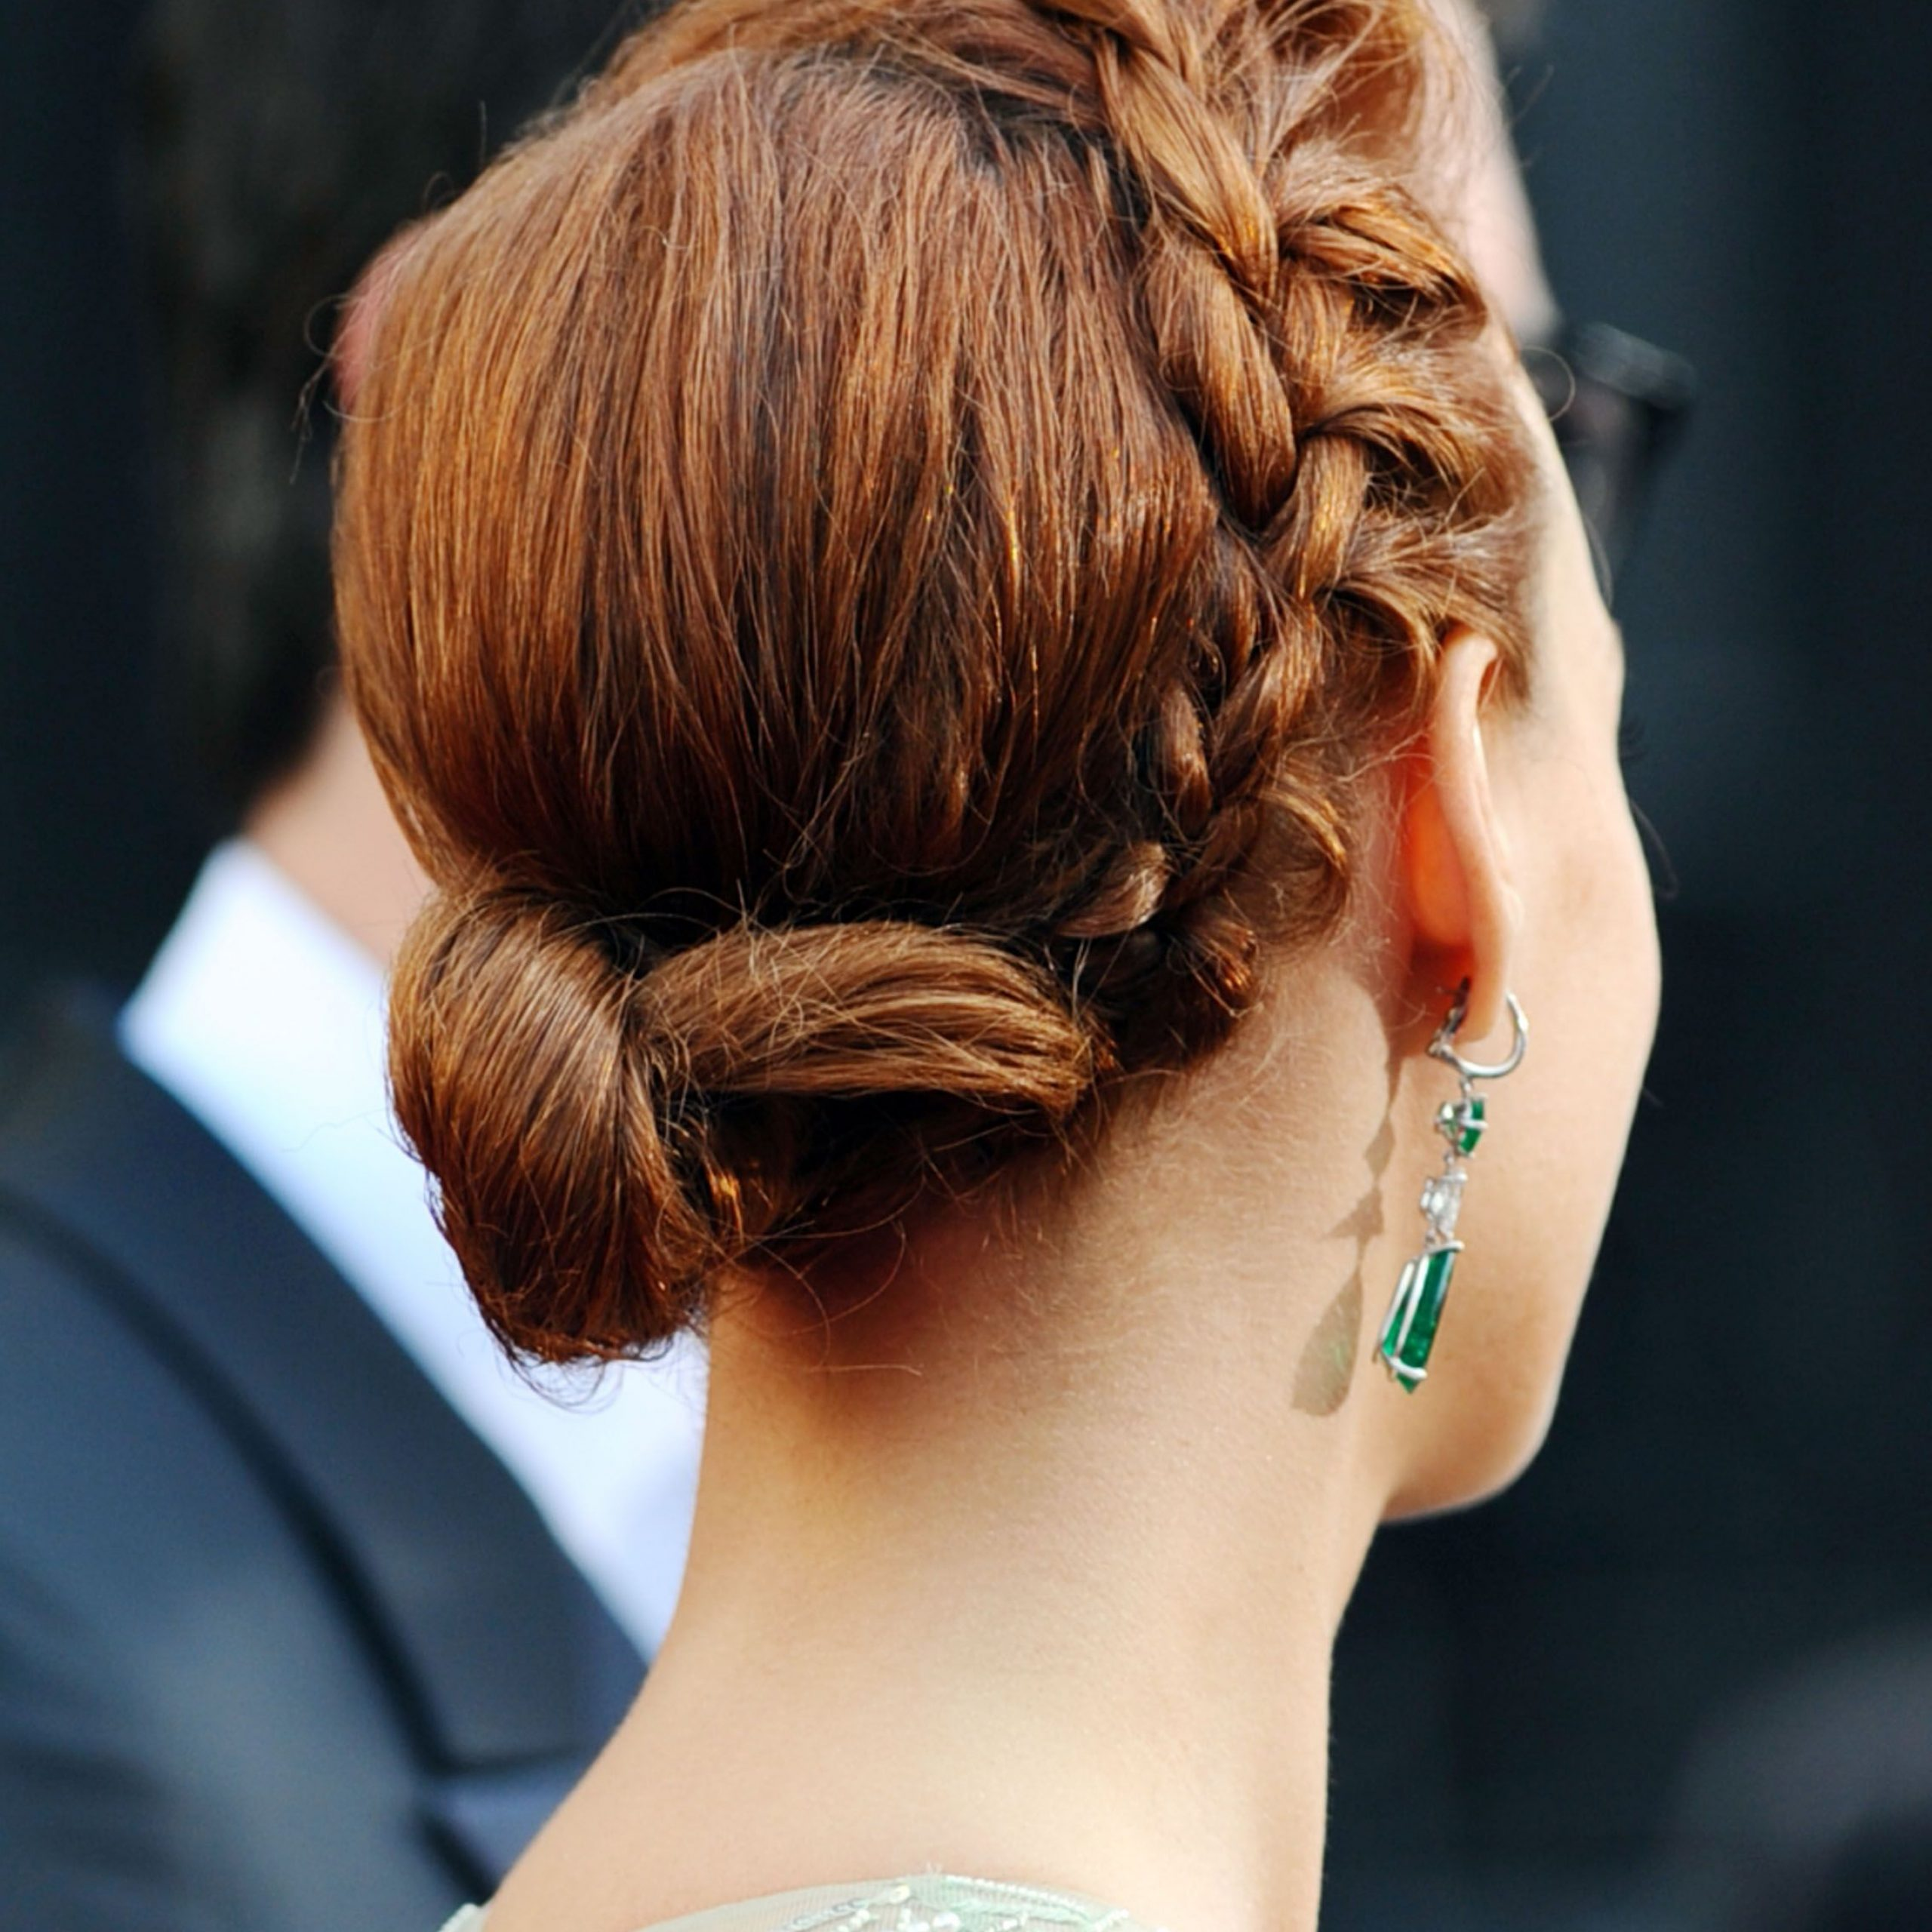 60 Easy Braided Hairstyles – Cool Braid How To's & Ideas Intended For Famous Loosely Tied Braid Hairstyles With A Ribbon (View 5 of 20)